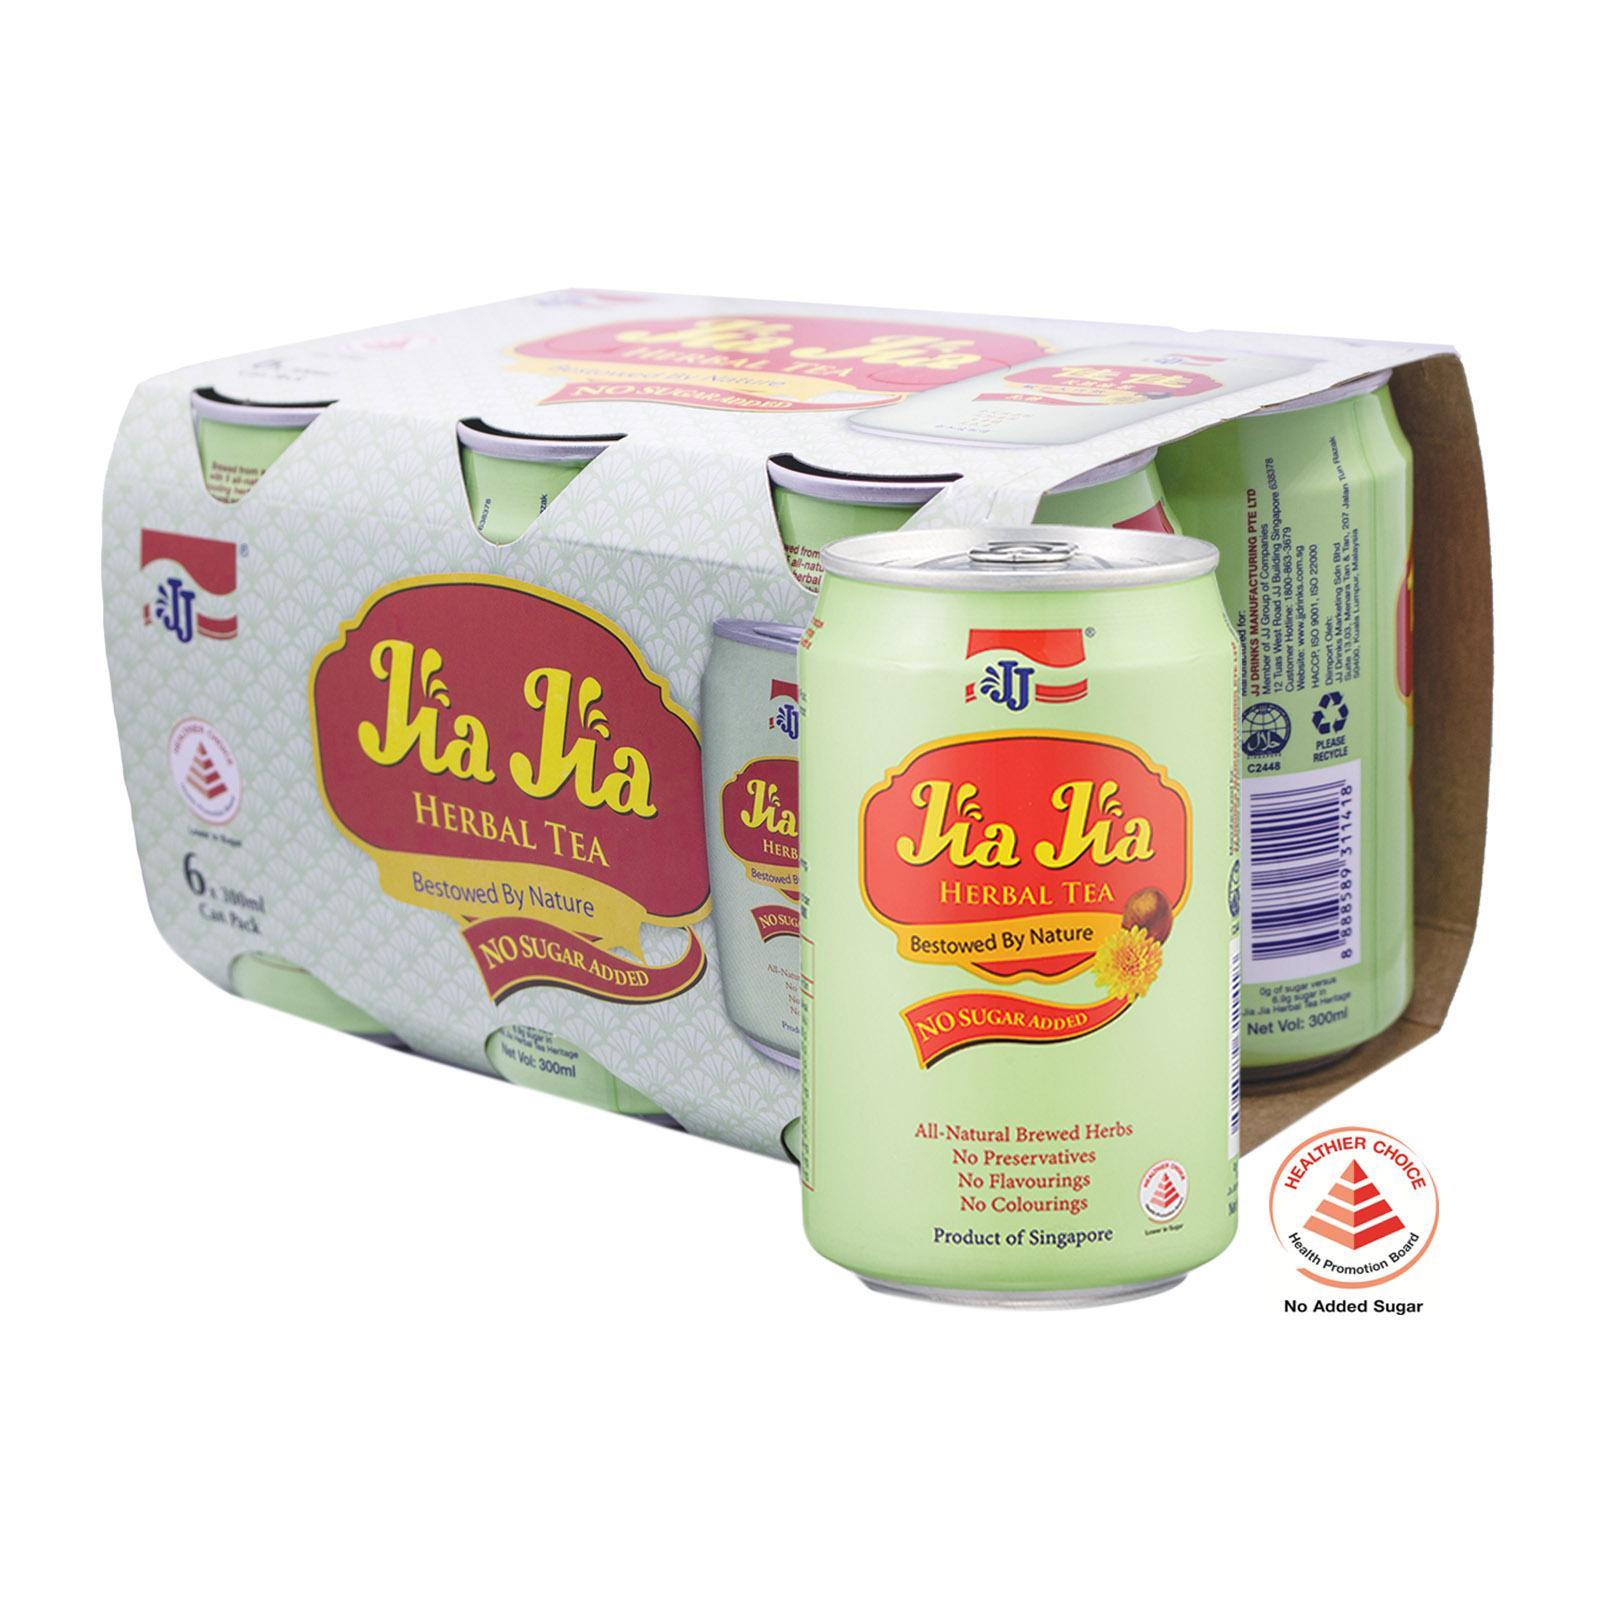 JJ Jia Jia Herbal Tea Less Sugar (6 Pack)